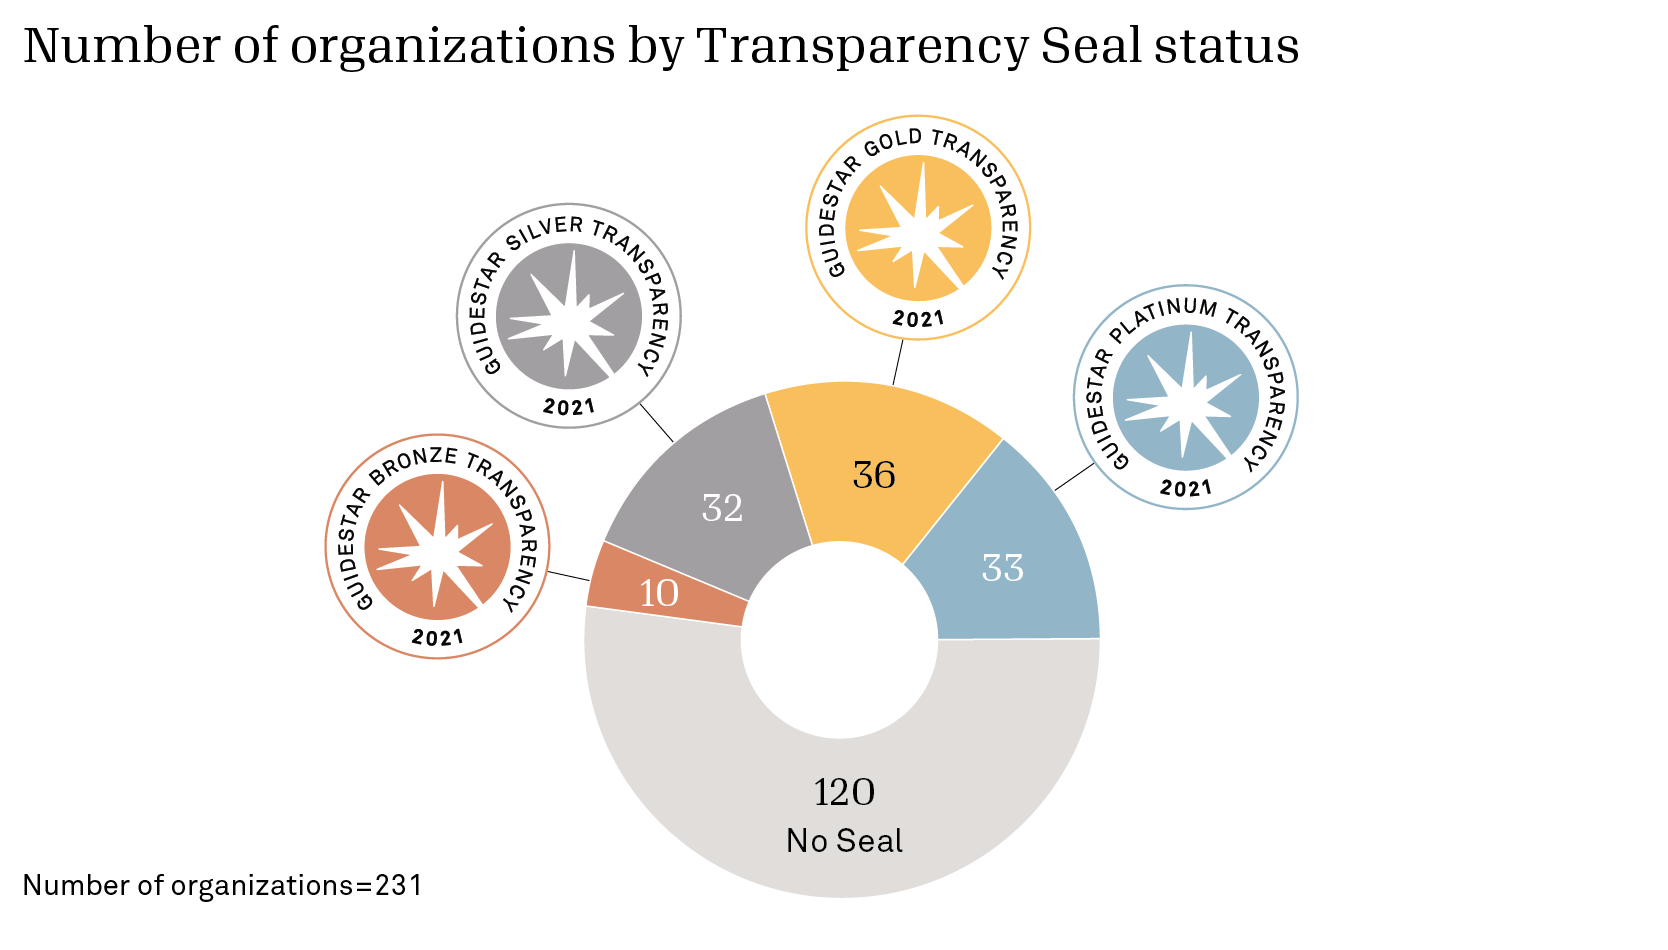 Pie chart showing number of organizations by transparency seal status n=231